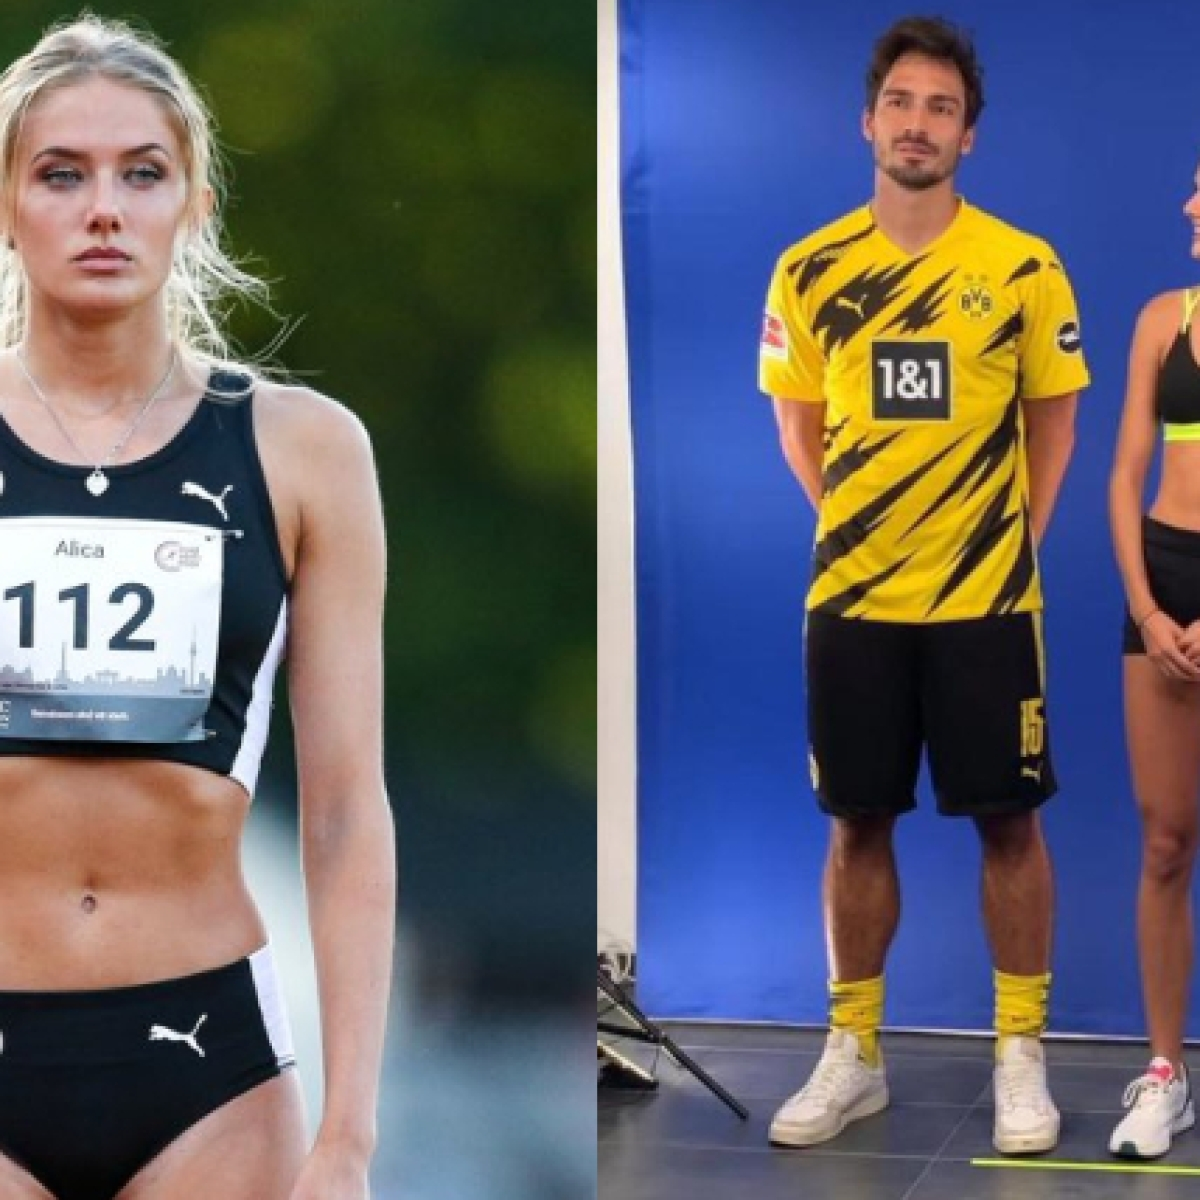 Who is Alica Schmidt? Dortmund's new fitness coach is also the 'World's Sexiest Athlete'